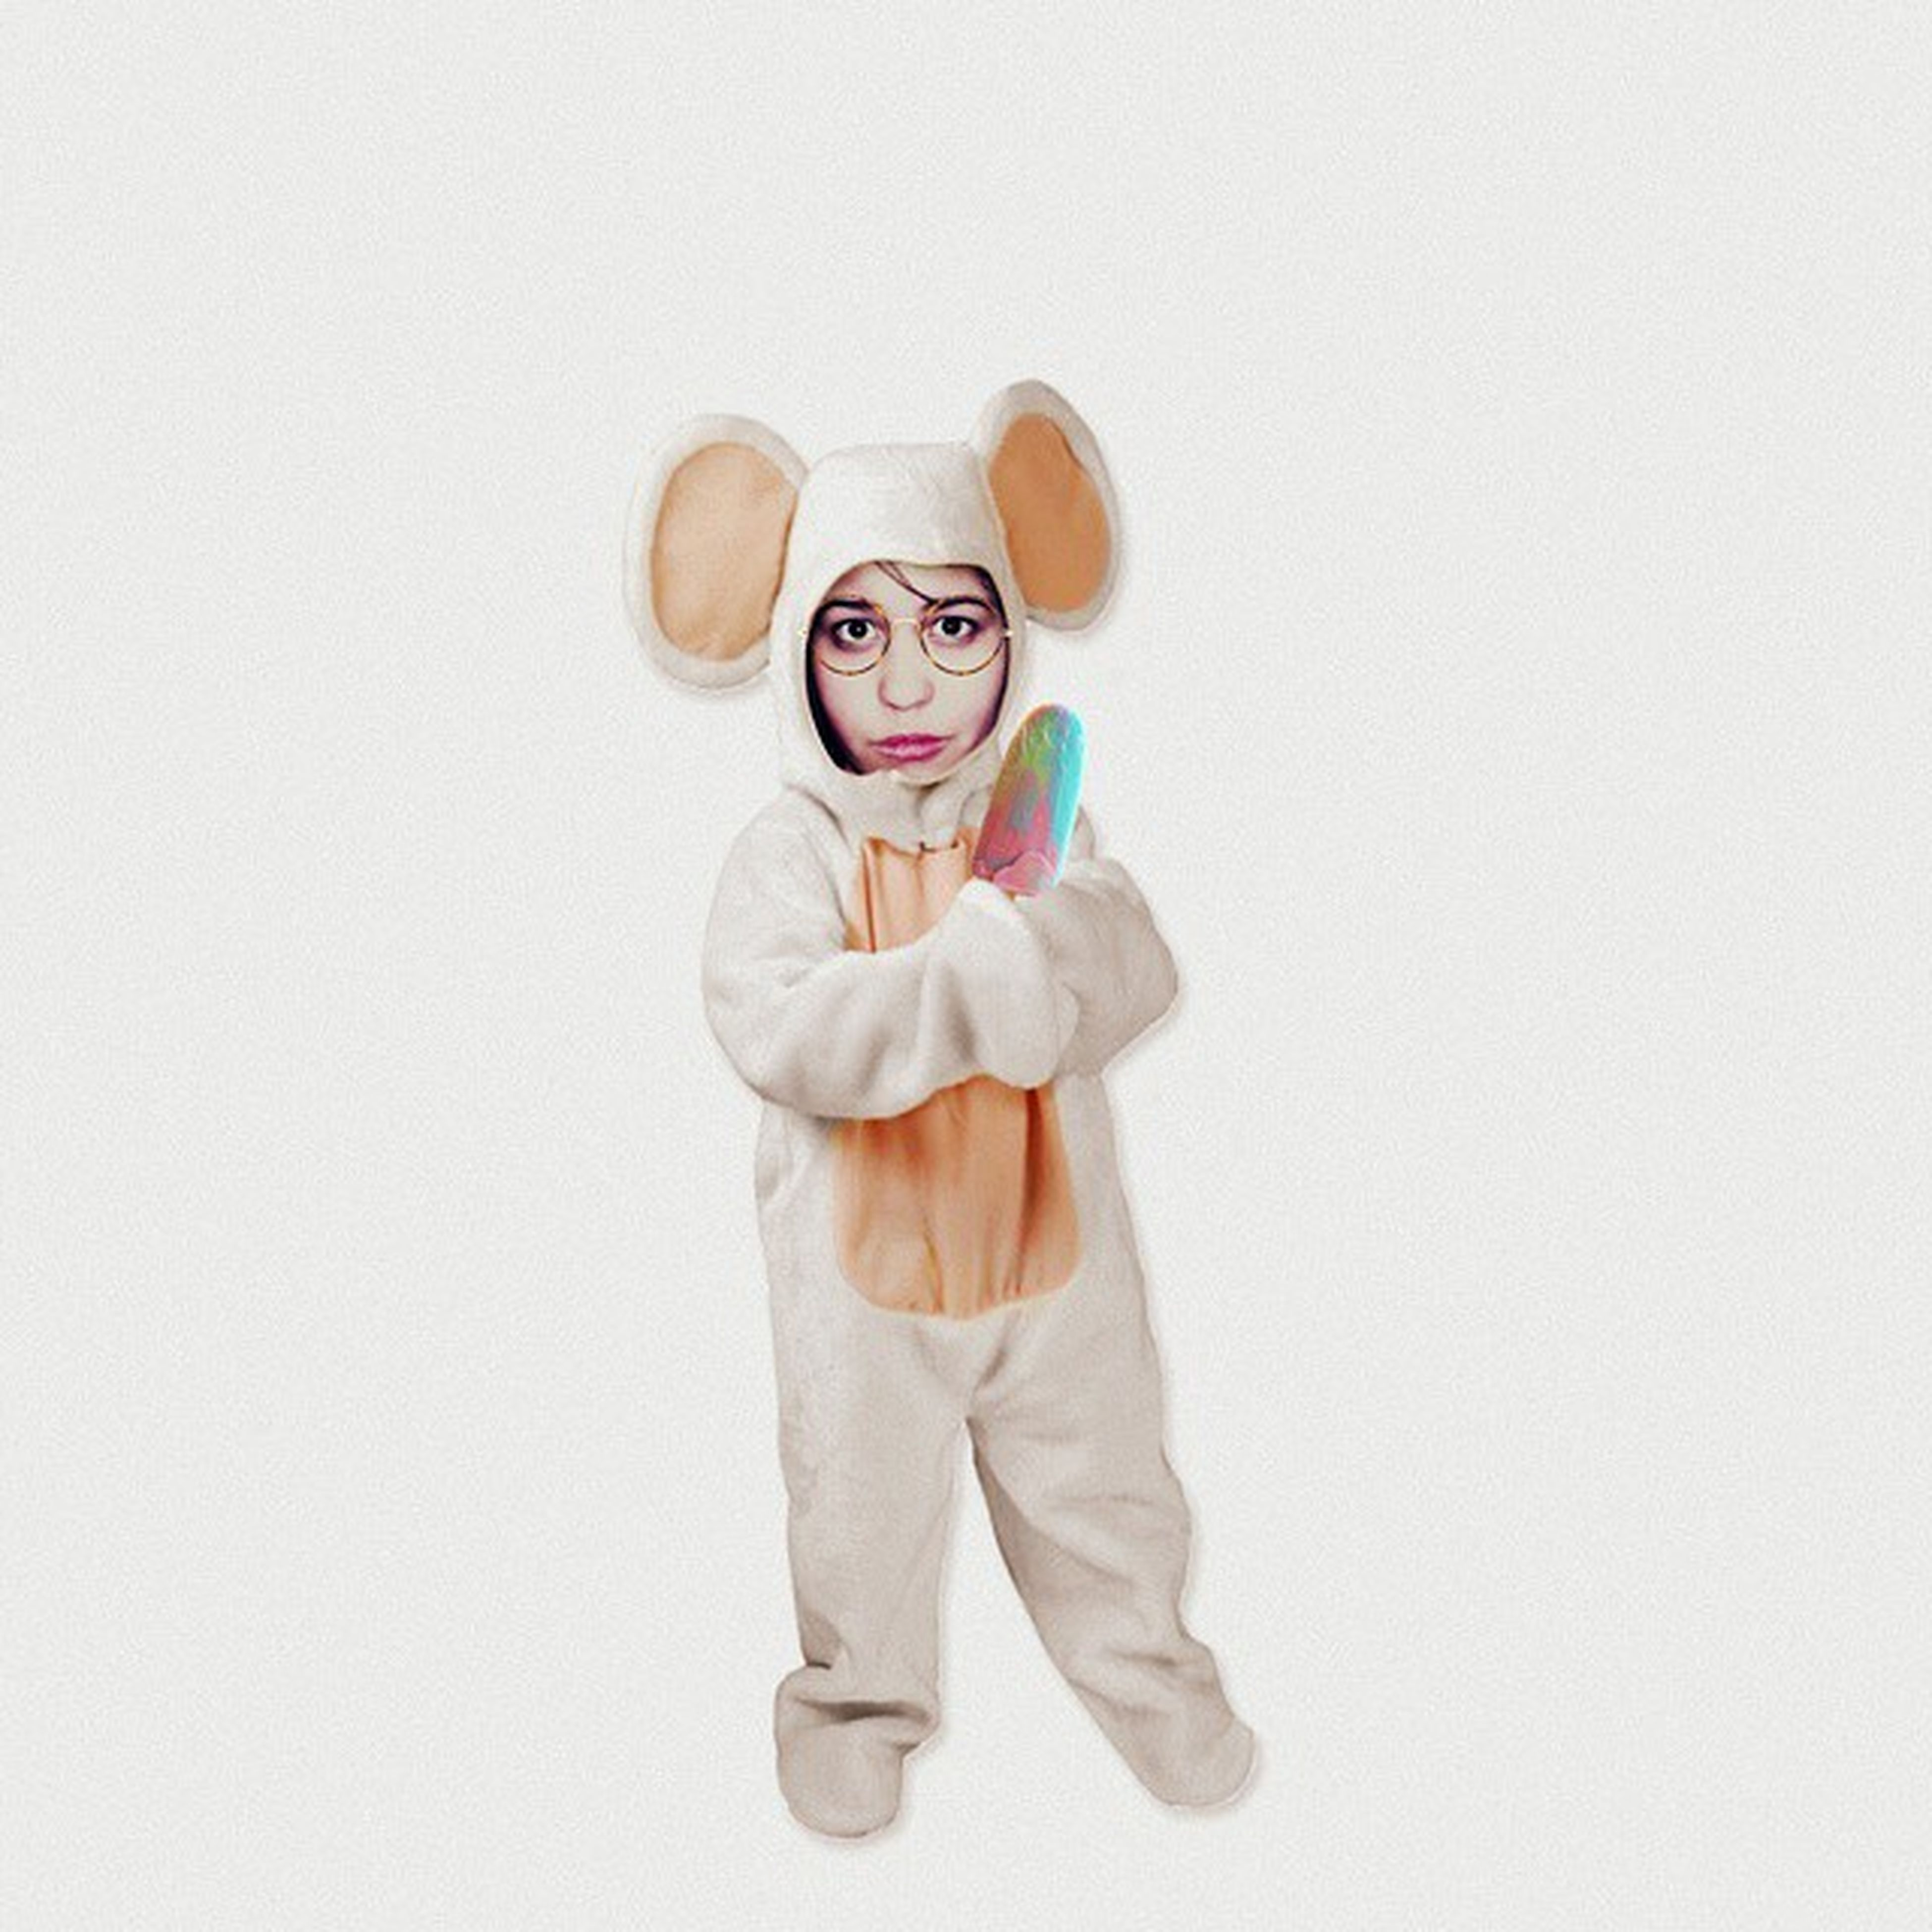 childhood, white background, indoors, studio shot, copy space, holding, casual clothing, lifestyles, leisure activity, white color, front view, elementary age, food and drink, innocence, standing, wall - building feature, toy, waist up